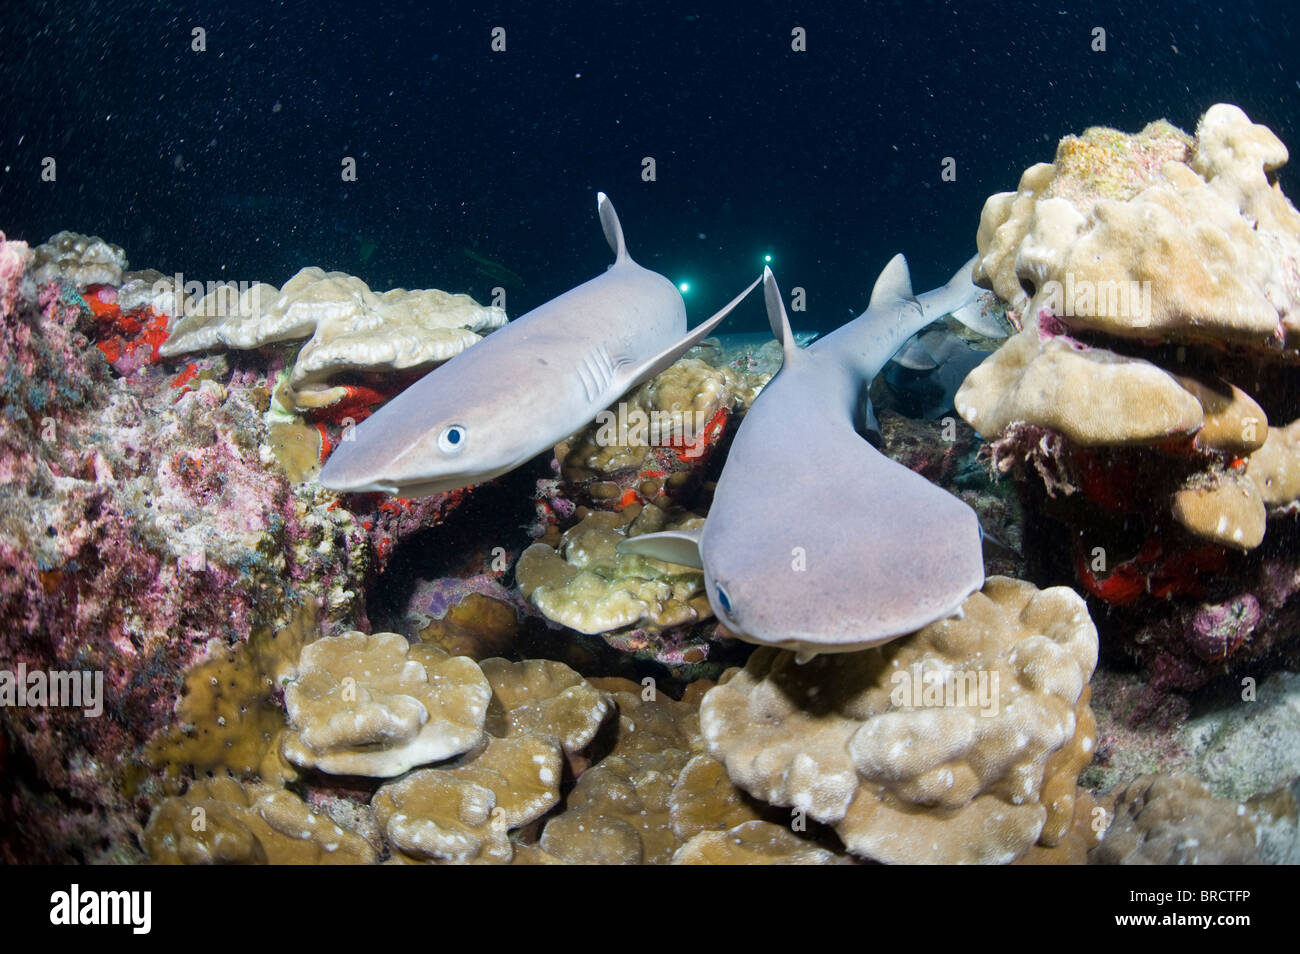 White tip reef sharks, Triaenodon obesus, Cocos Islands, Pacific - Stock Image